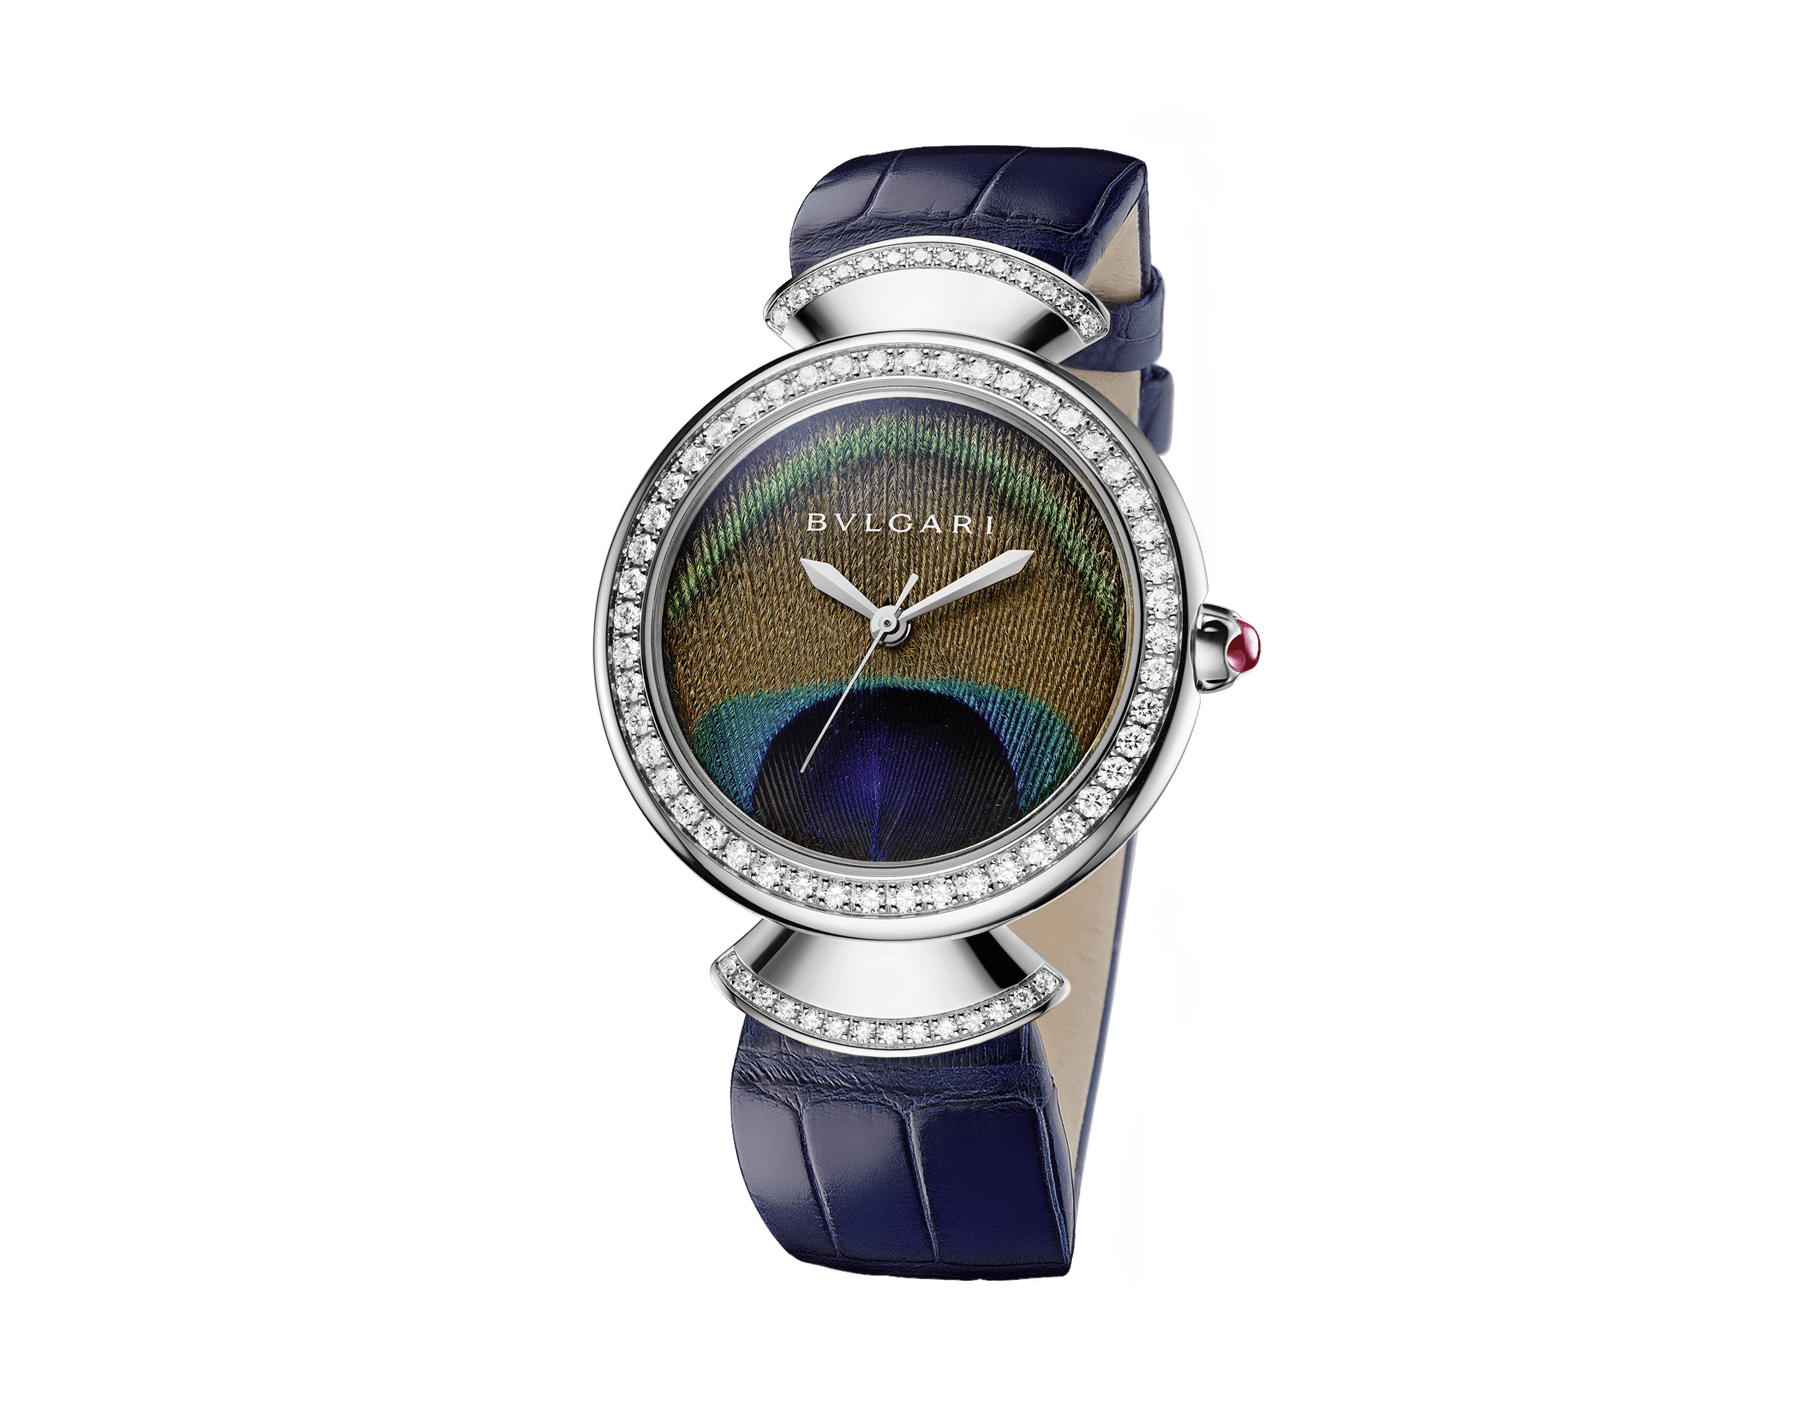 DIVAS' DREAM watch with mechanical manufacture movement, automatic winding, 18 kt white gold case, 18 kt white gold bezel and fan-shaped links both set with brilliant-cut diamonds, natural peacock feather dial and blue alligator bracelet 103263 image 2